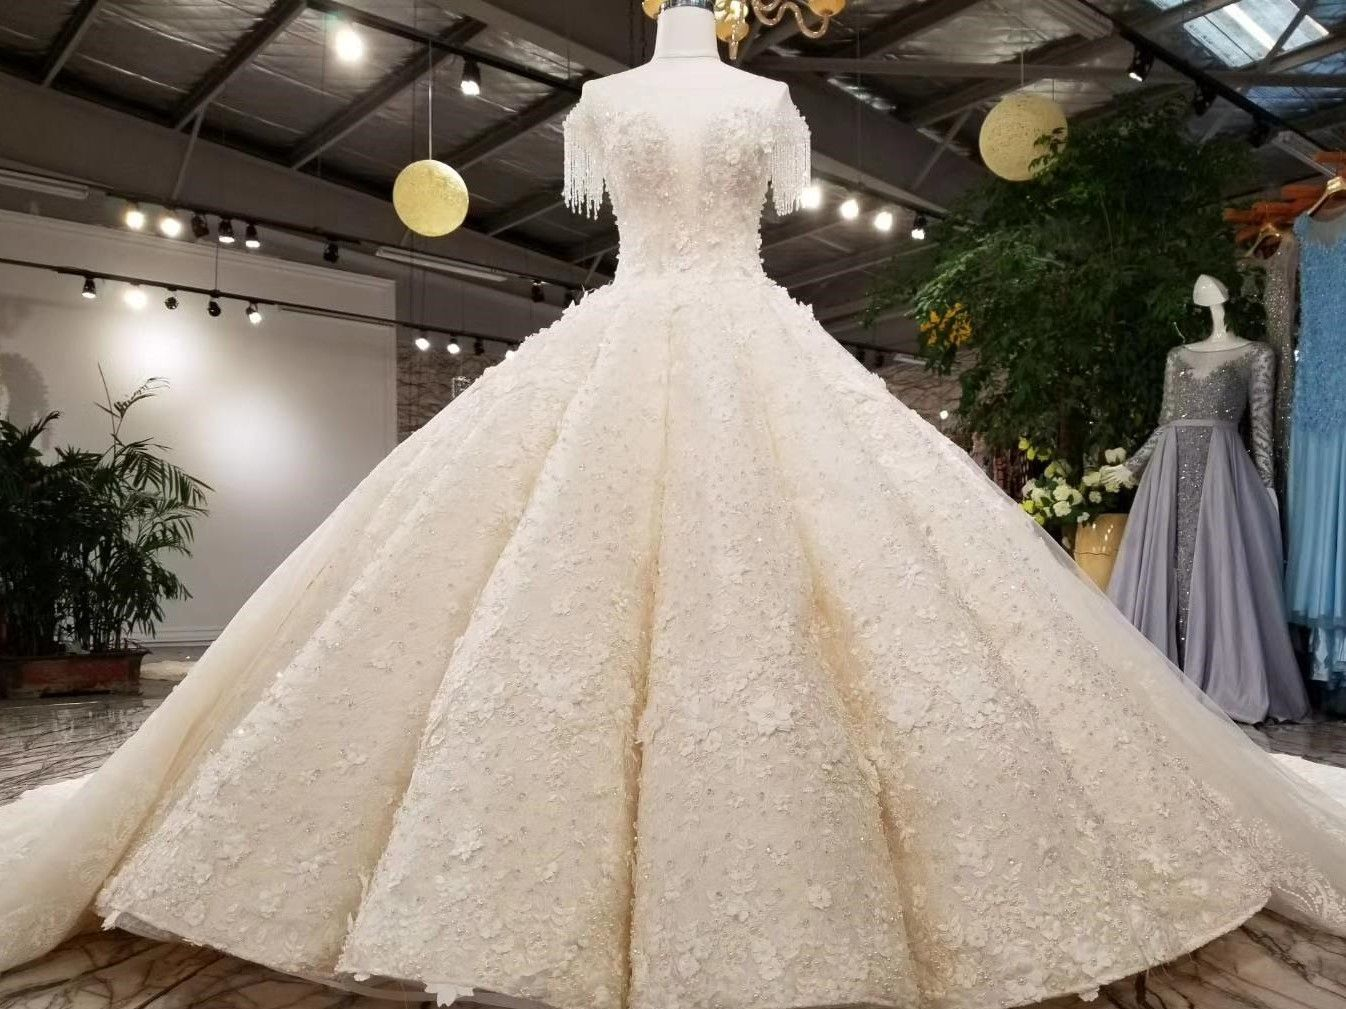 Latest Collection Of New Bridal Ball Gown Designs 2019 Bridal Ball Gown Ball Gowns Wedding Dress Fabrics